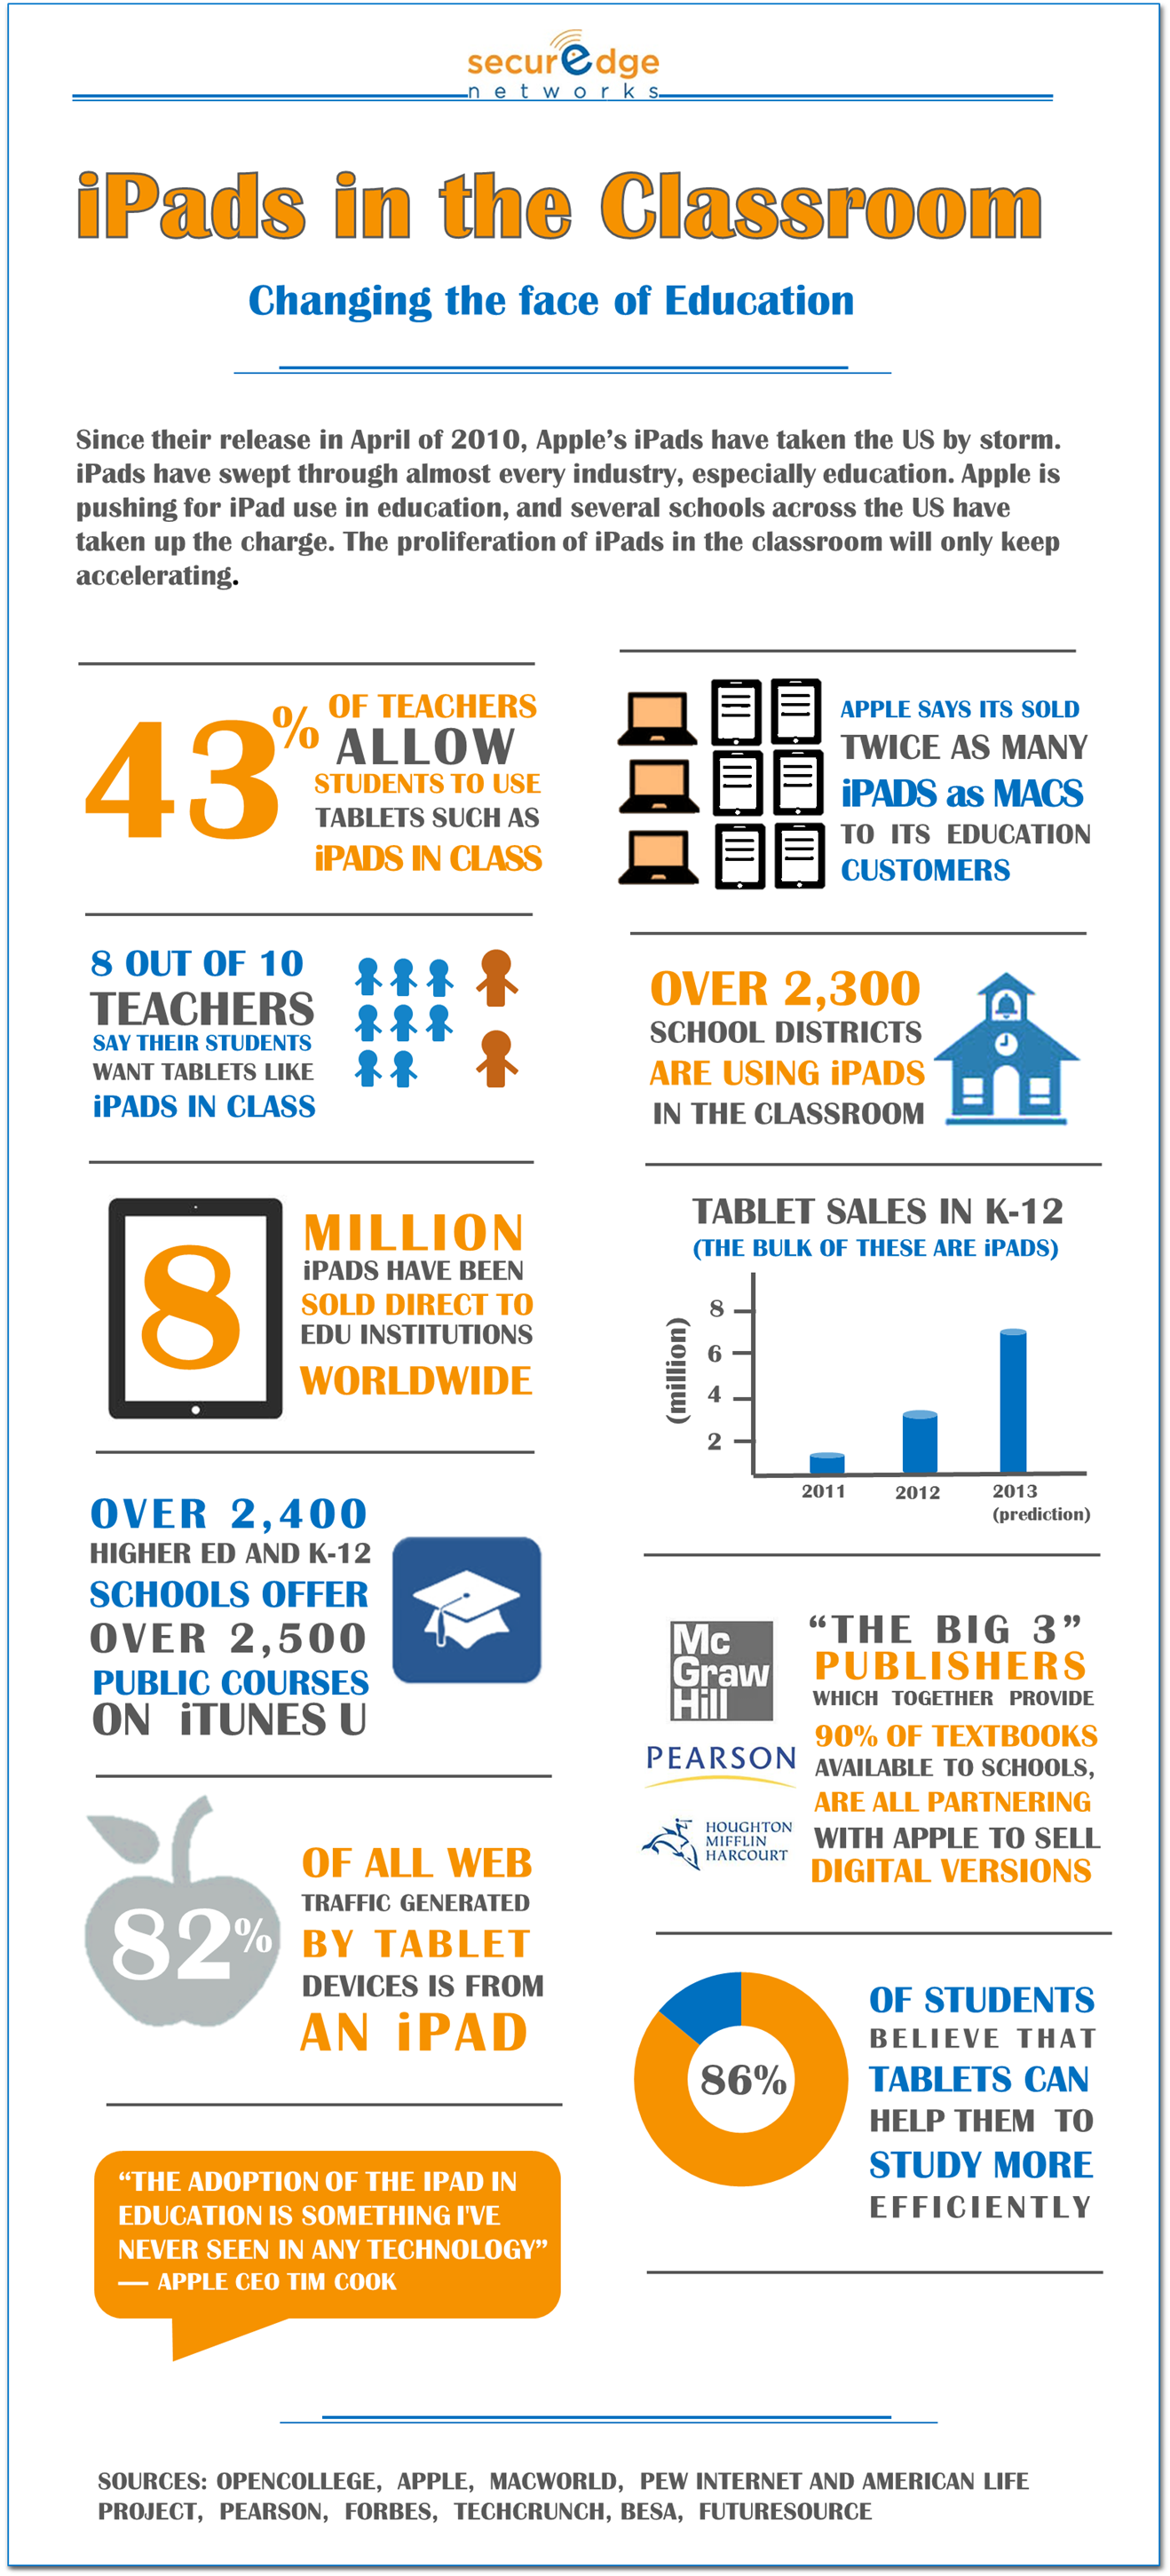 ipads in the classroom infographic